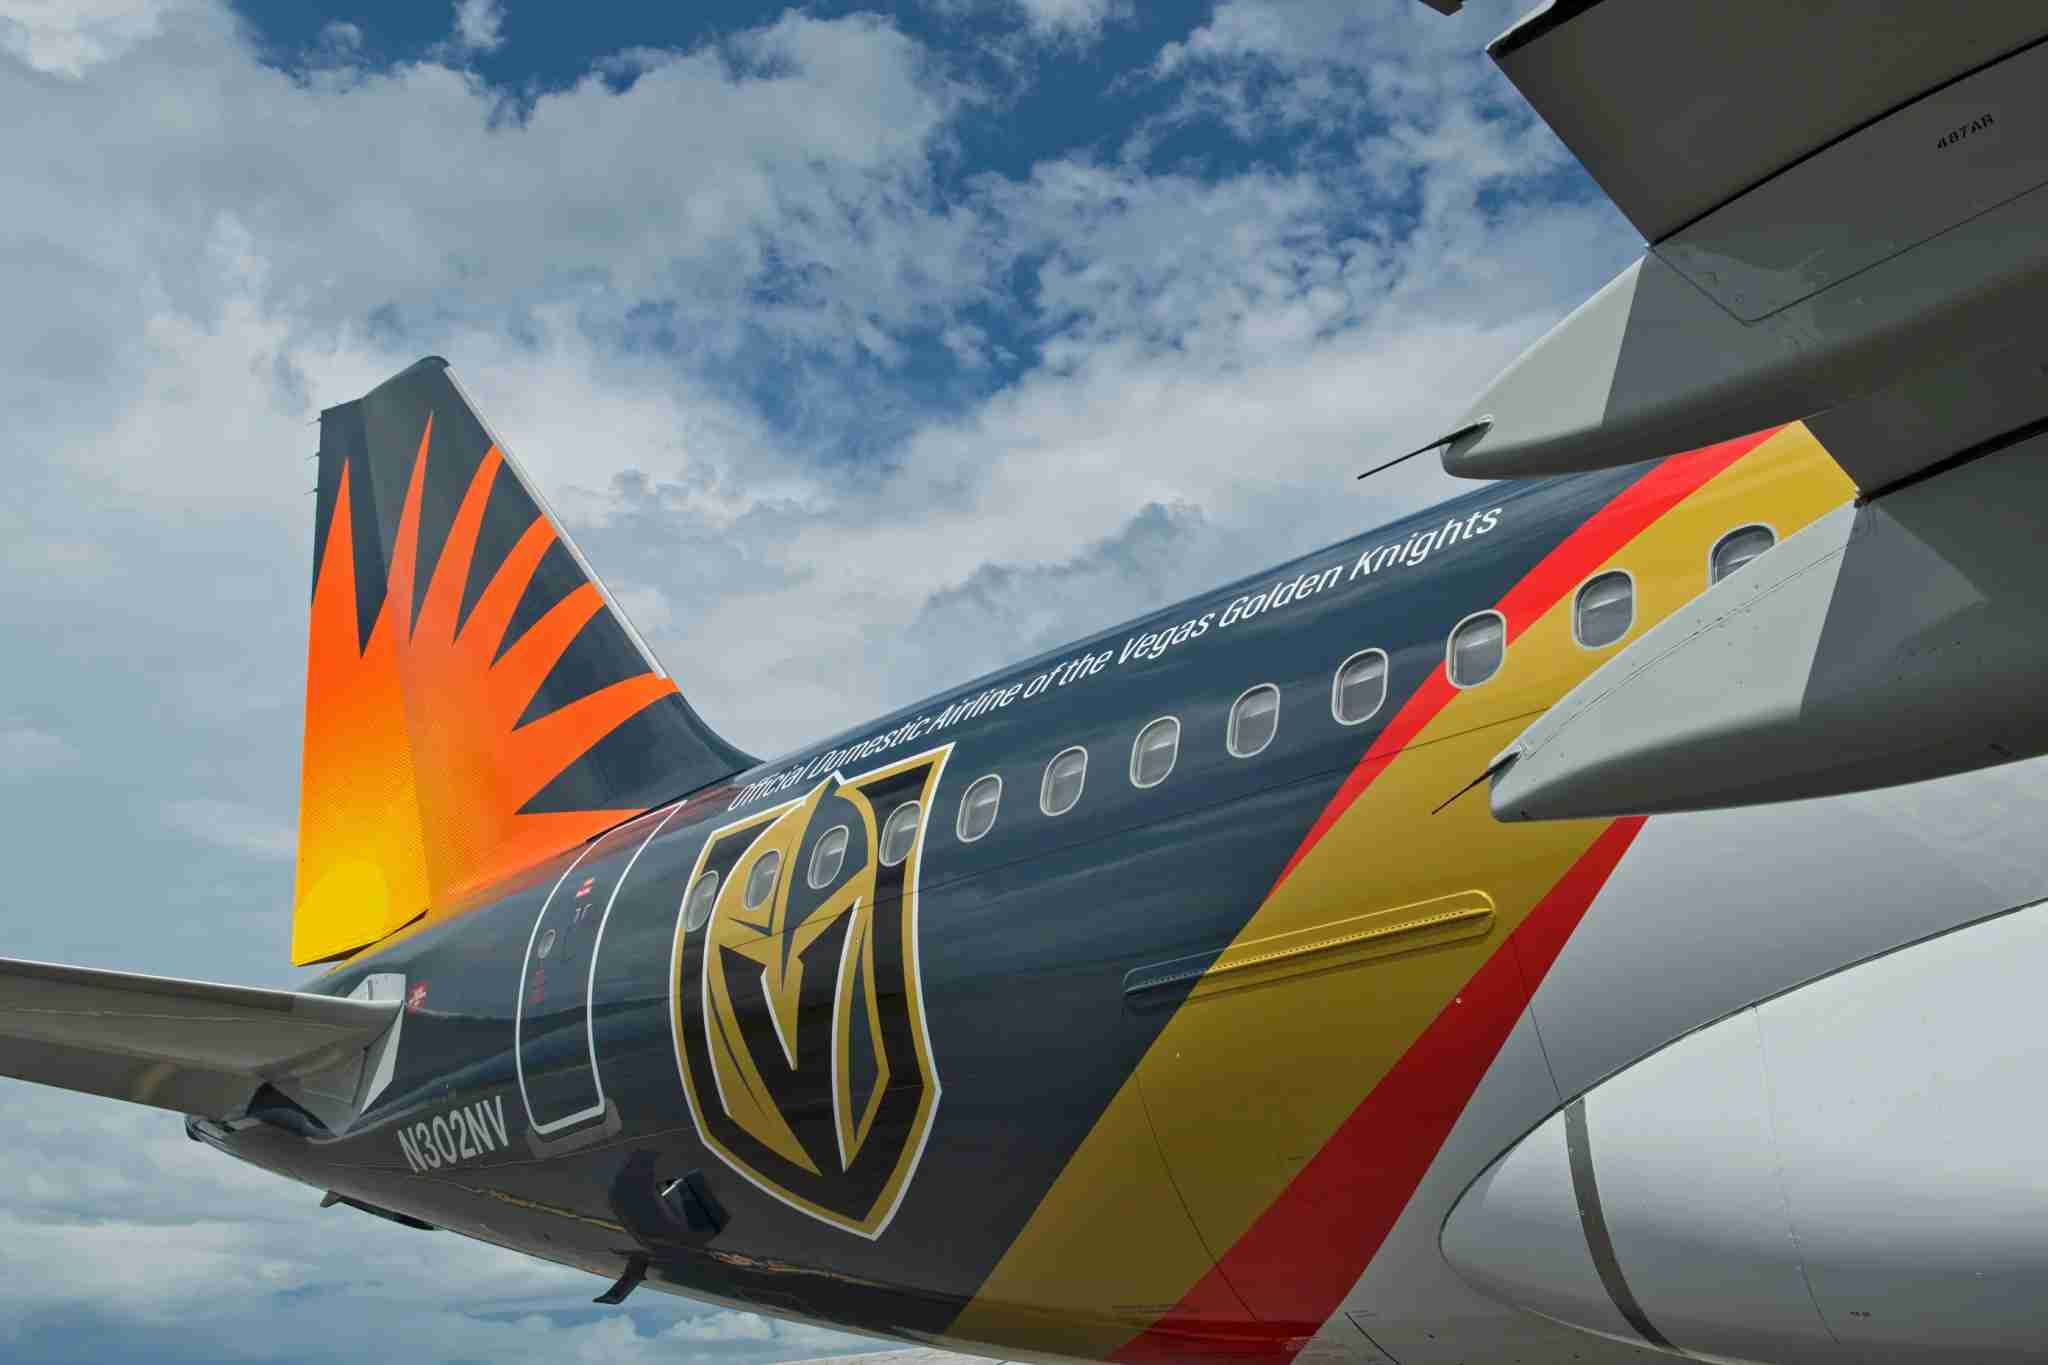 First look at Allegiant's Vegas Golden Knights livery